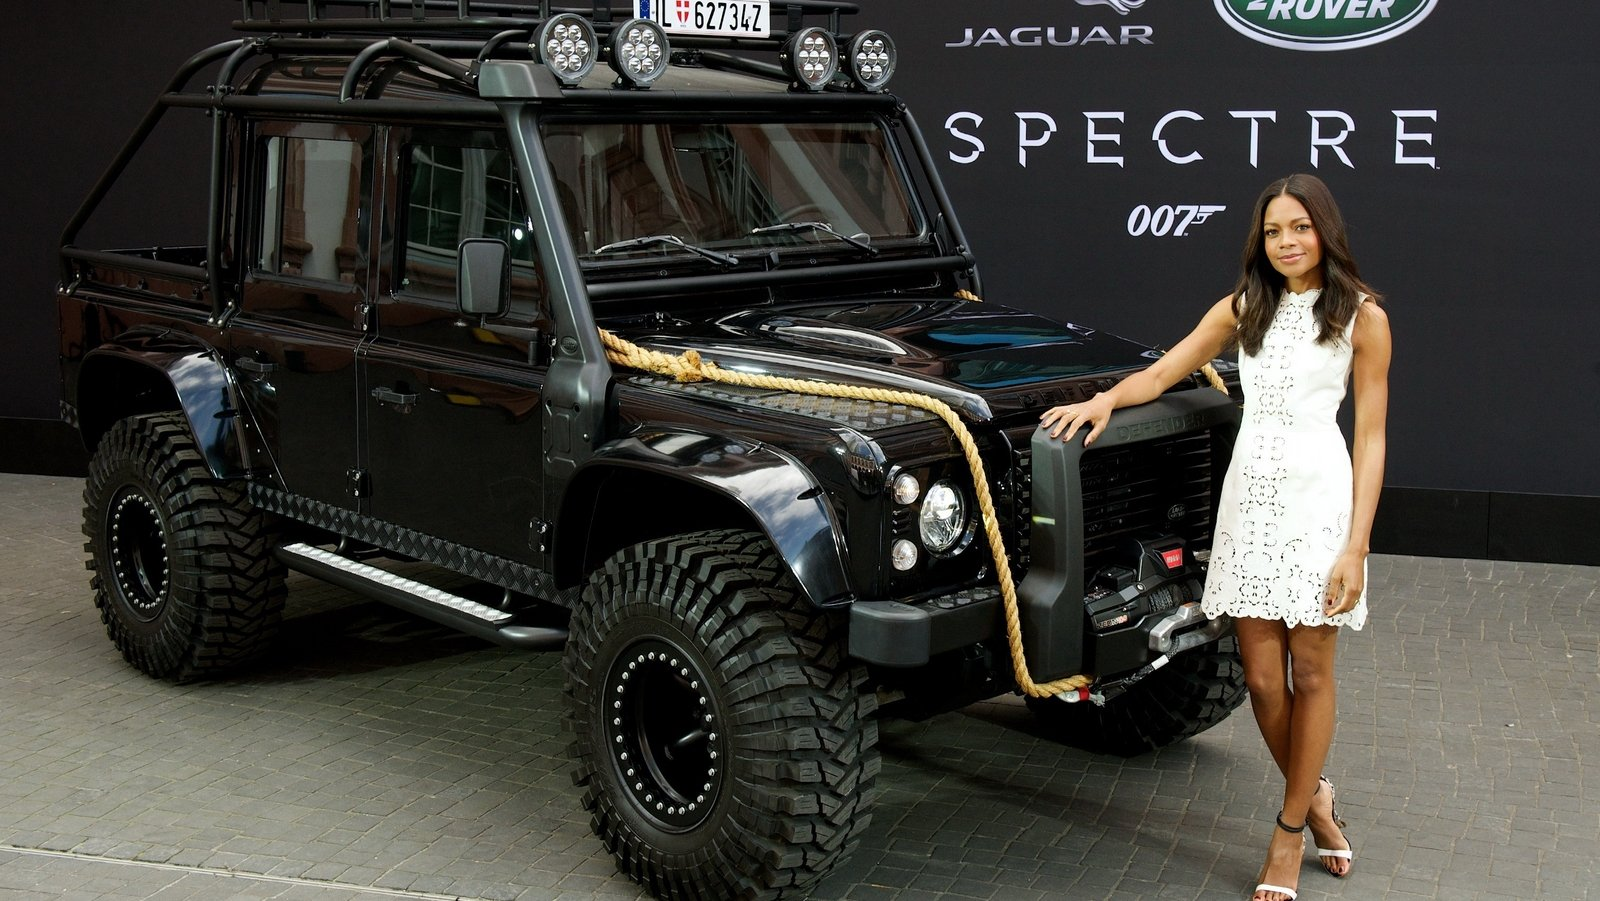 2015 Land Rover Defender Spectre Stunt Car Picture